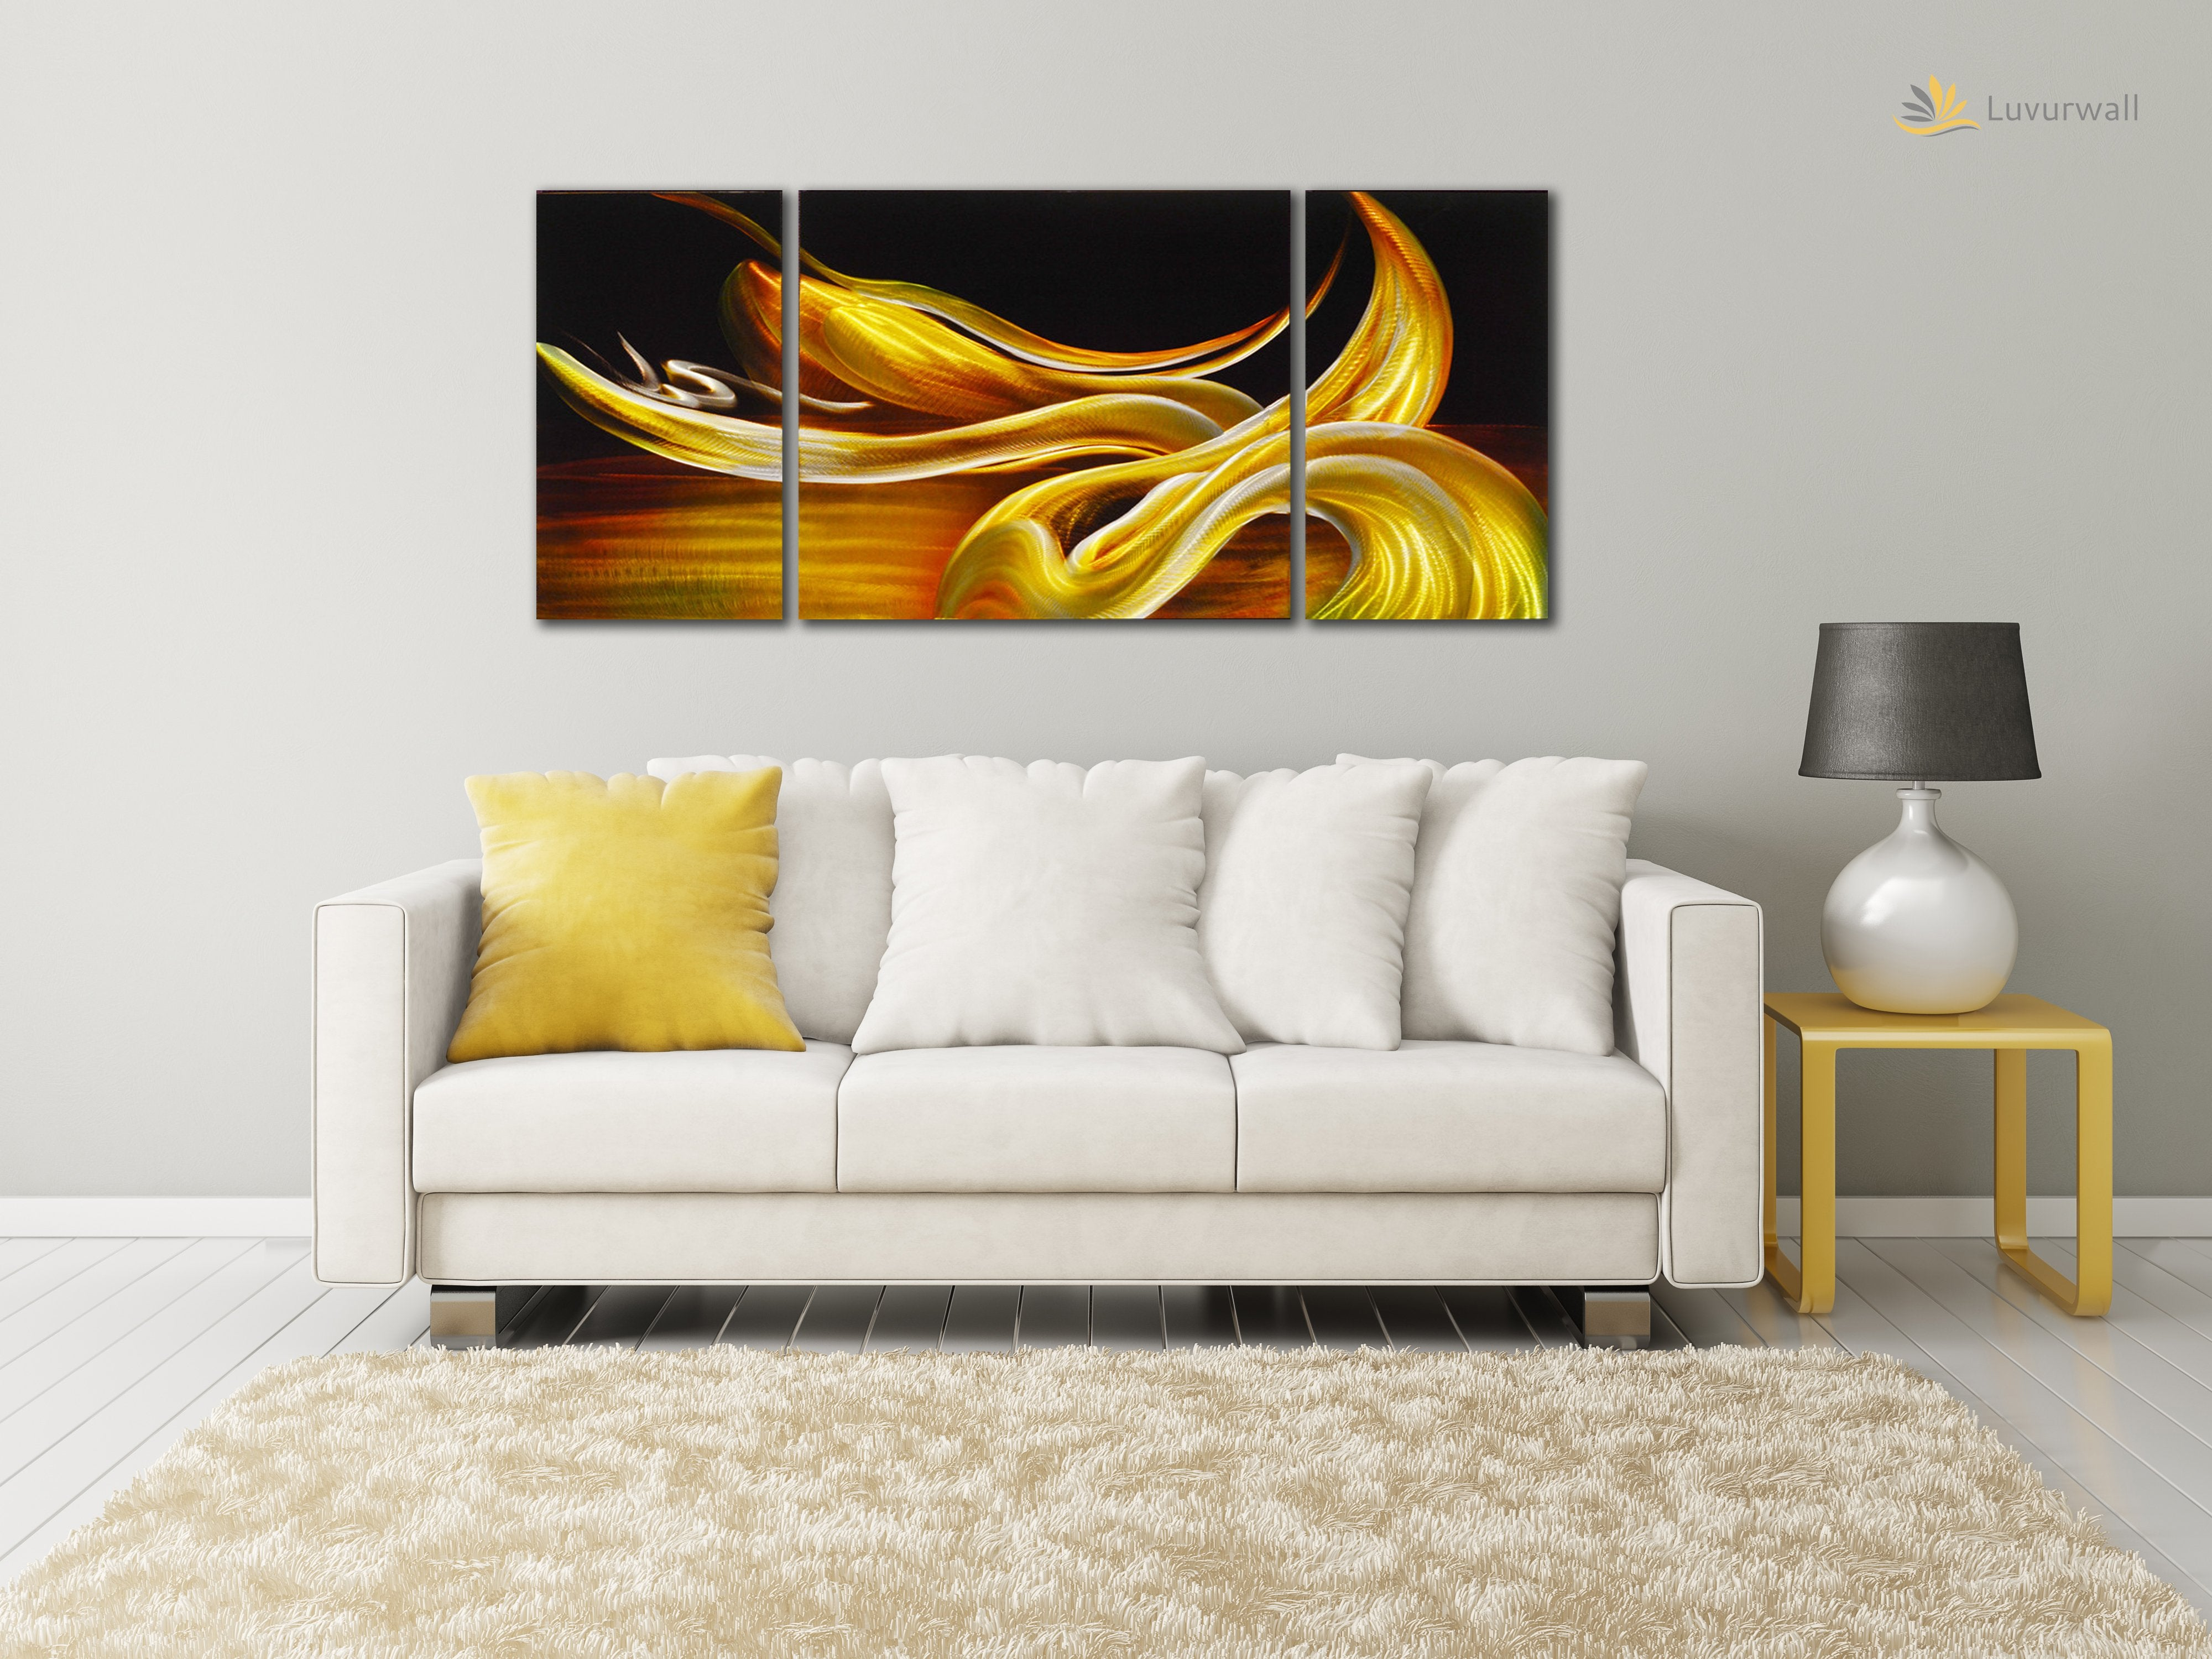 Luvurwall 3 Panel Yellow Abstract Metal Wall Art, Metal Wall Art - Luvurwall